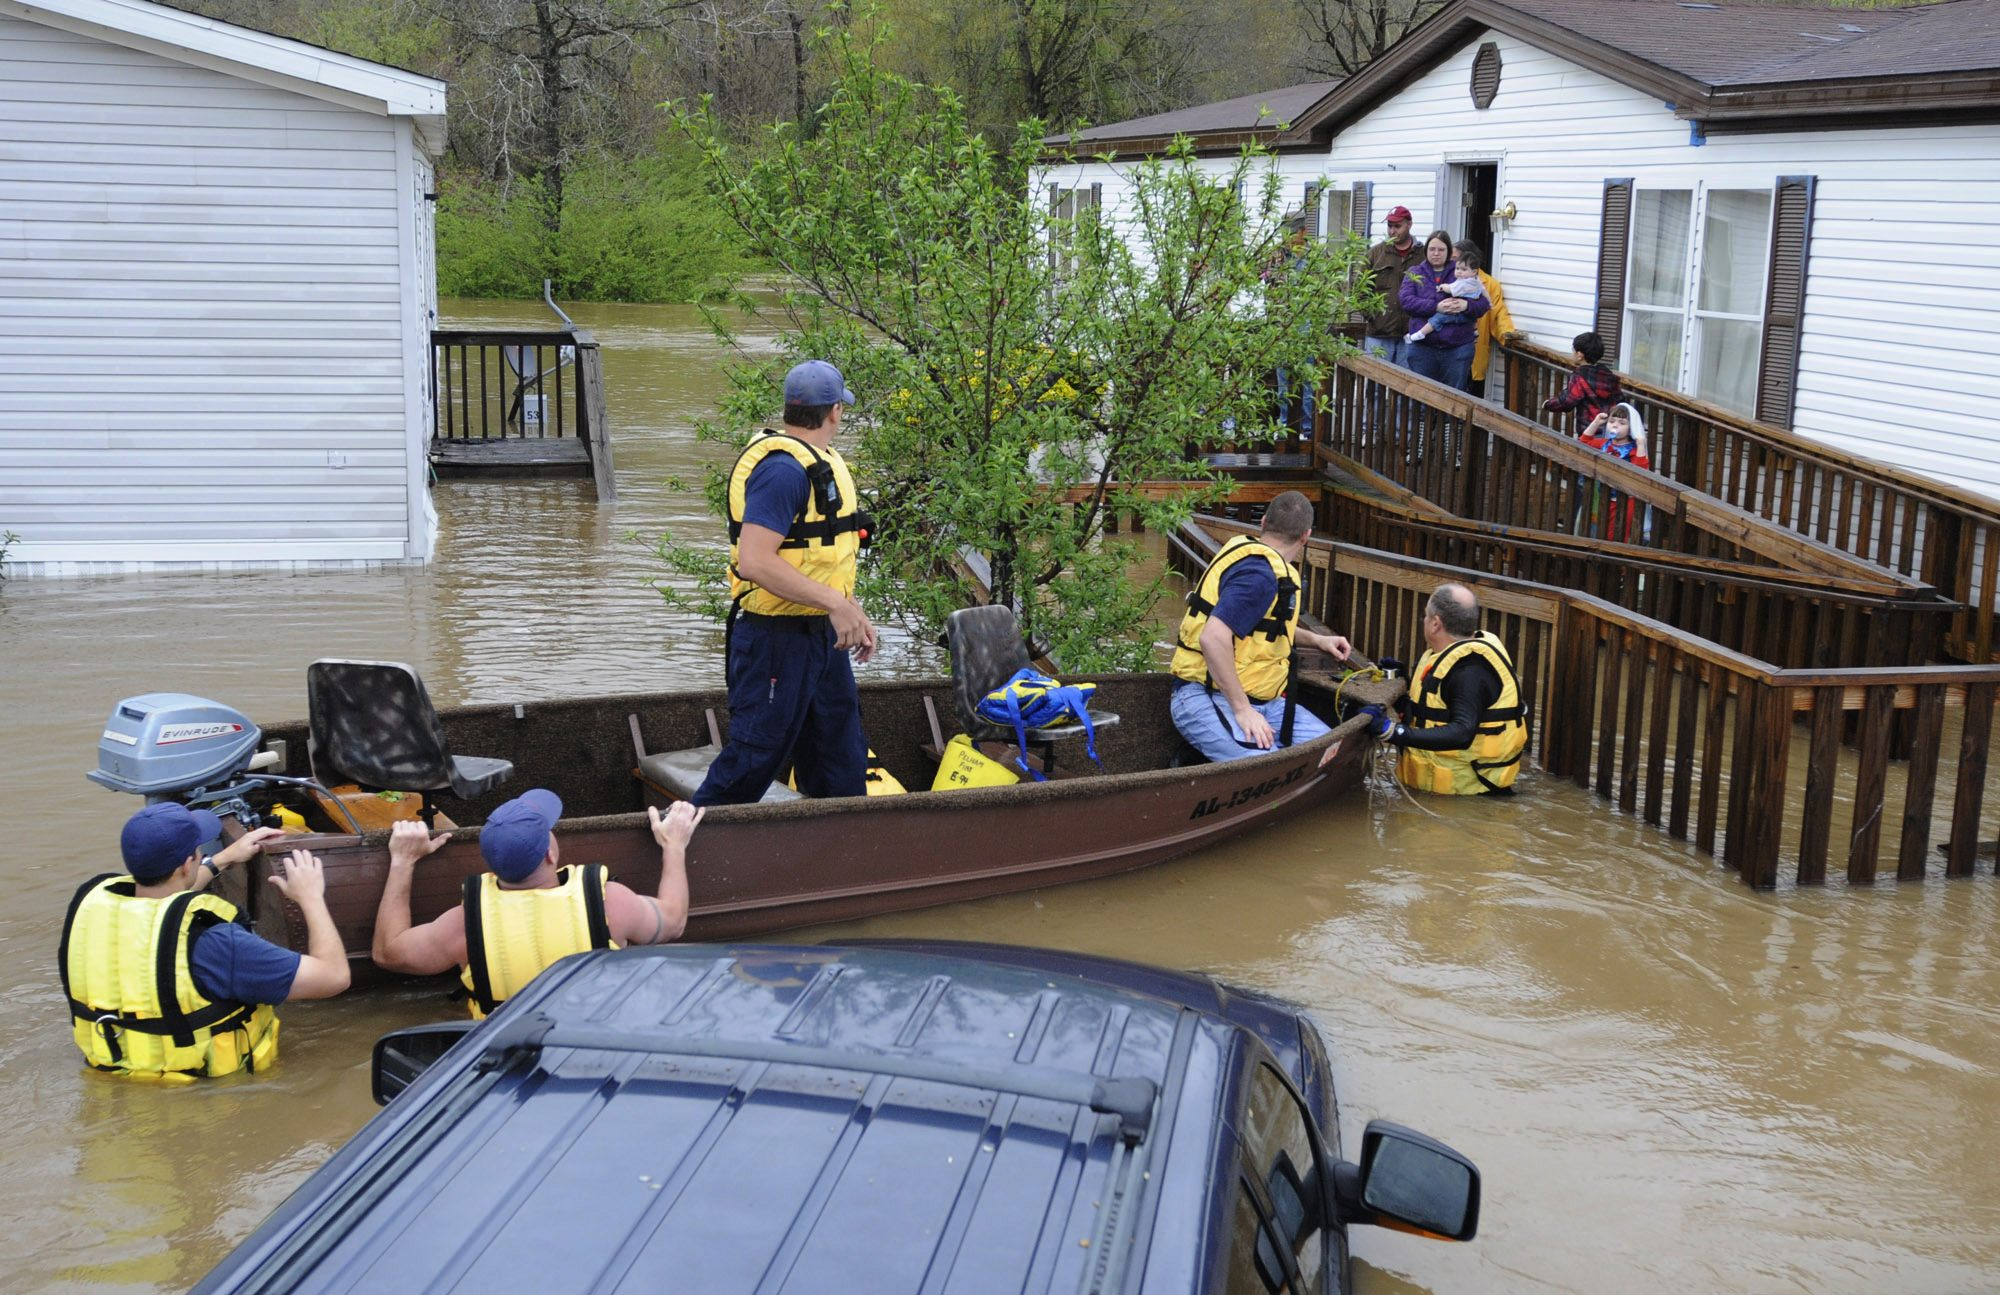 7 Firefighters rescue a family from their home, surrounded by floodwaters, in a mobile home park in Pelham, Ala., on Monday, April 7, 2014.